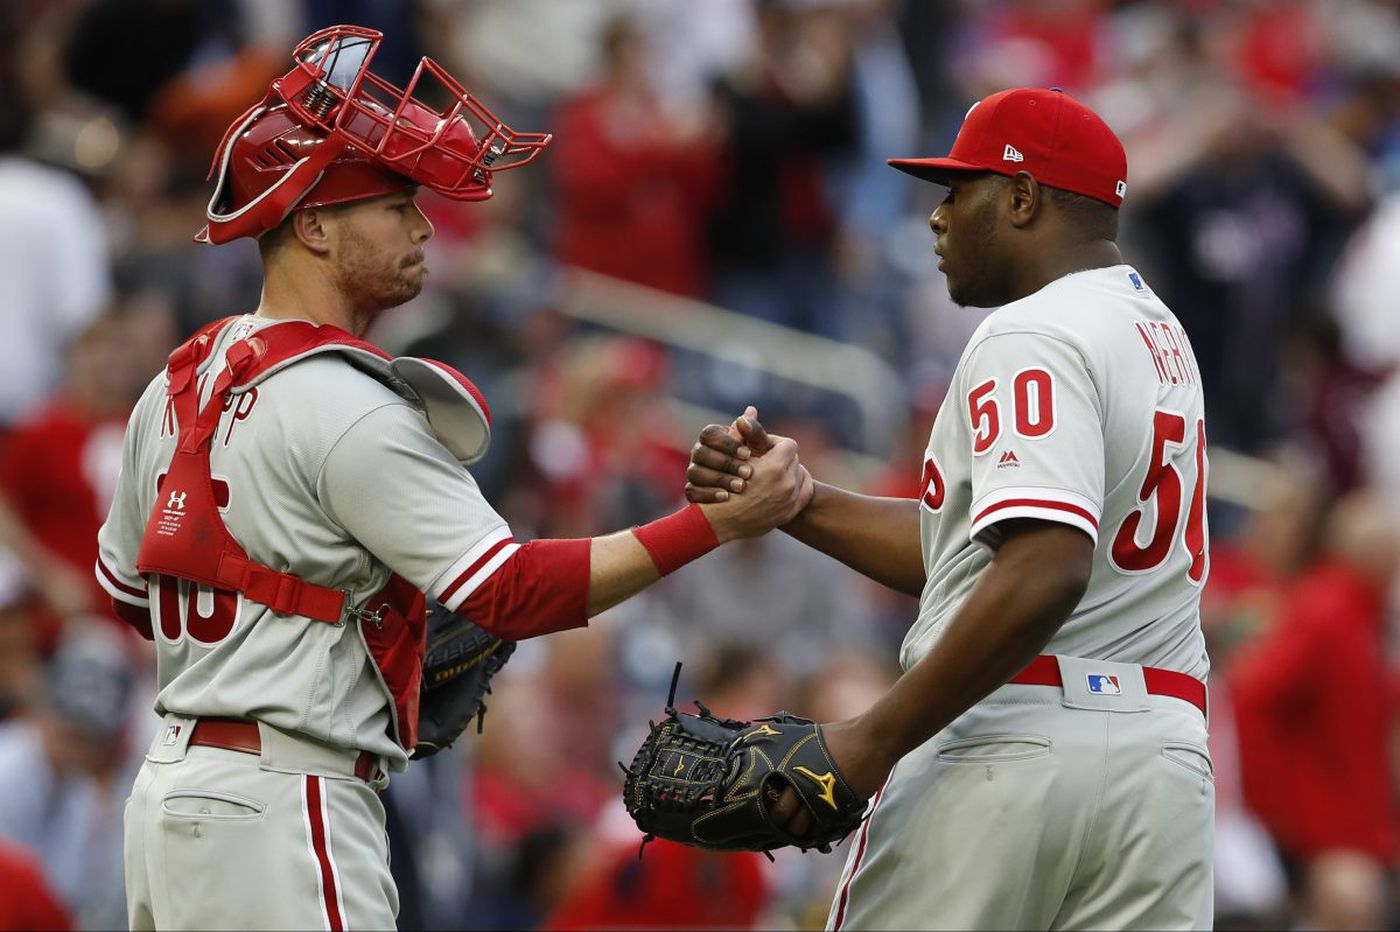 Pedro Florimon's heads-up fake-out in ninth helps clinch victory for Phillies